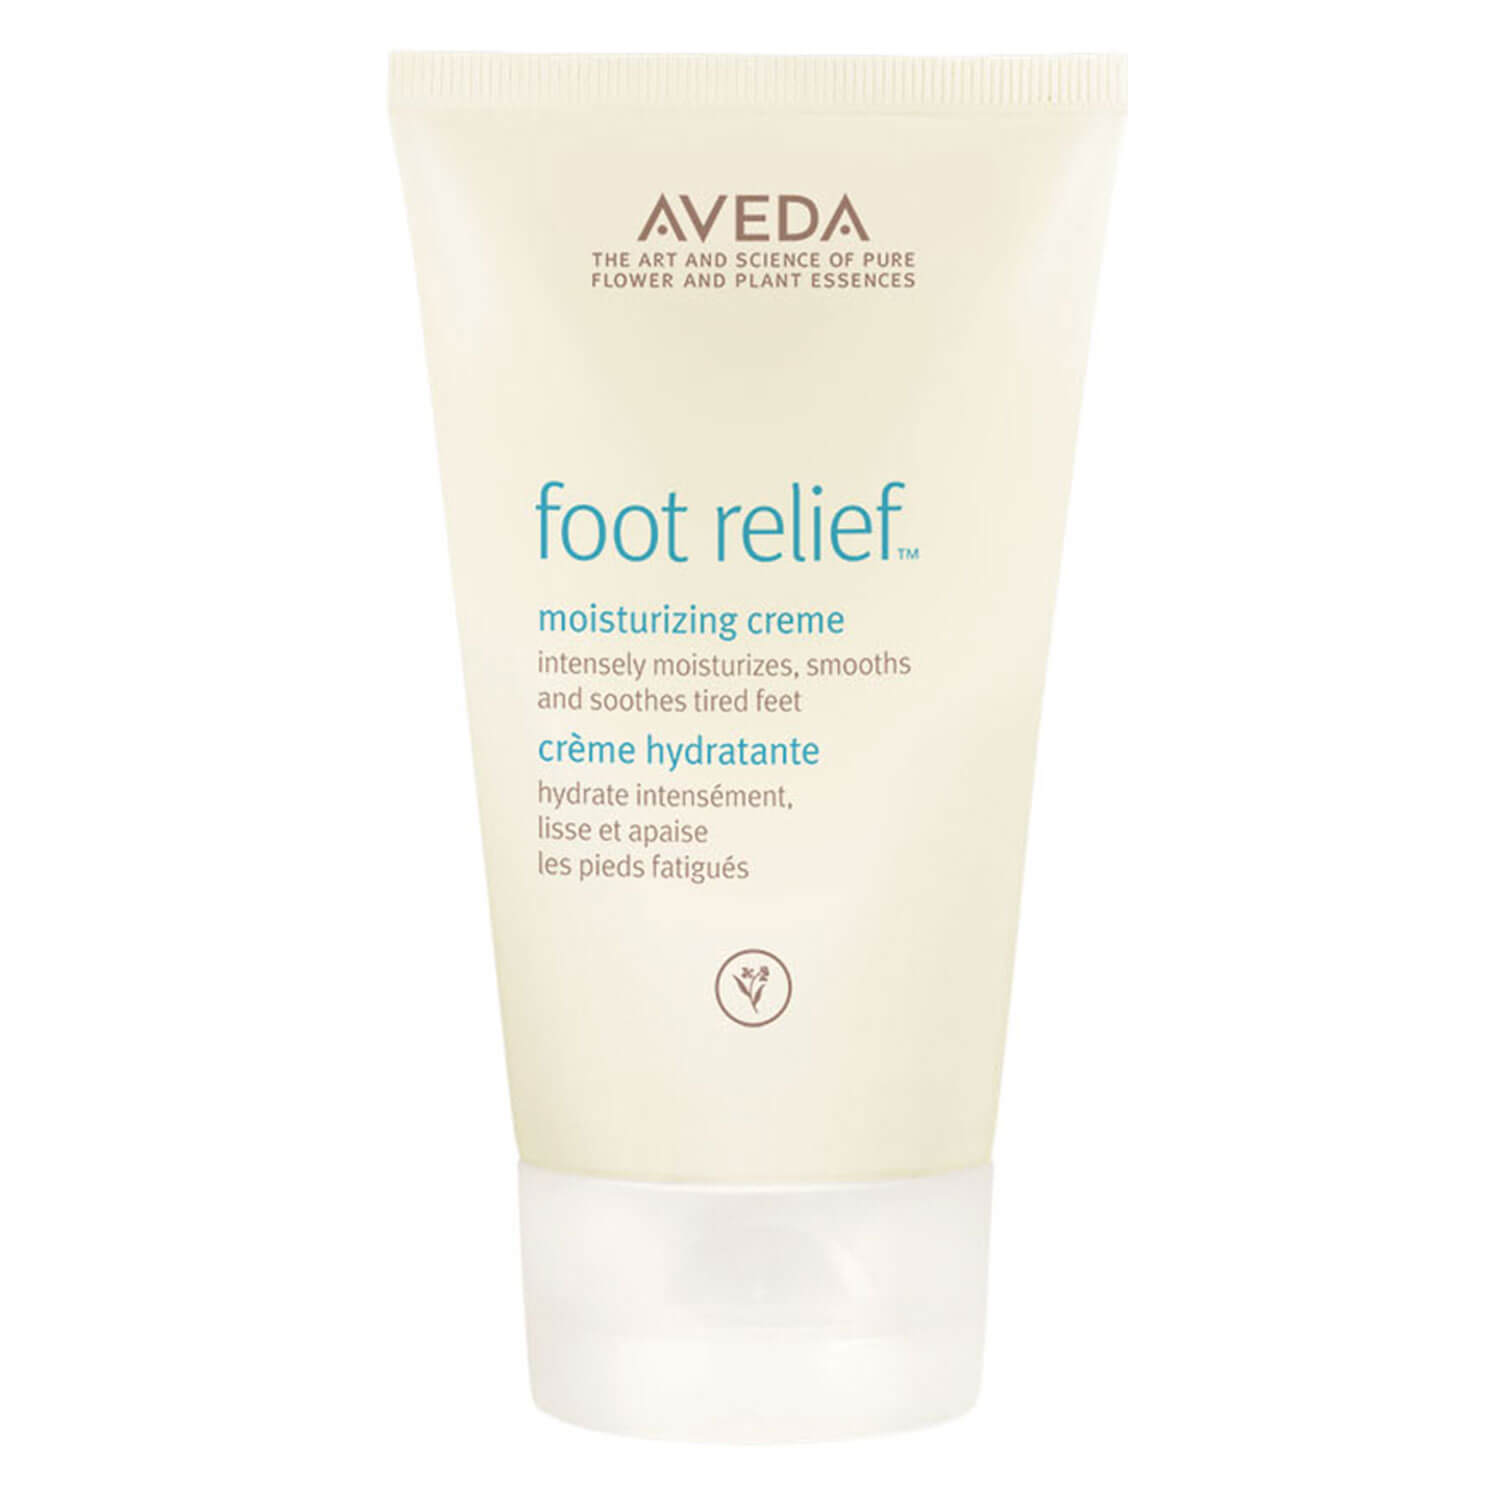 foot relief - moisturizing creme